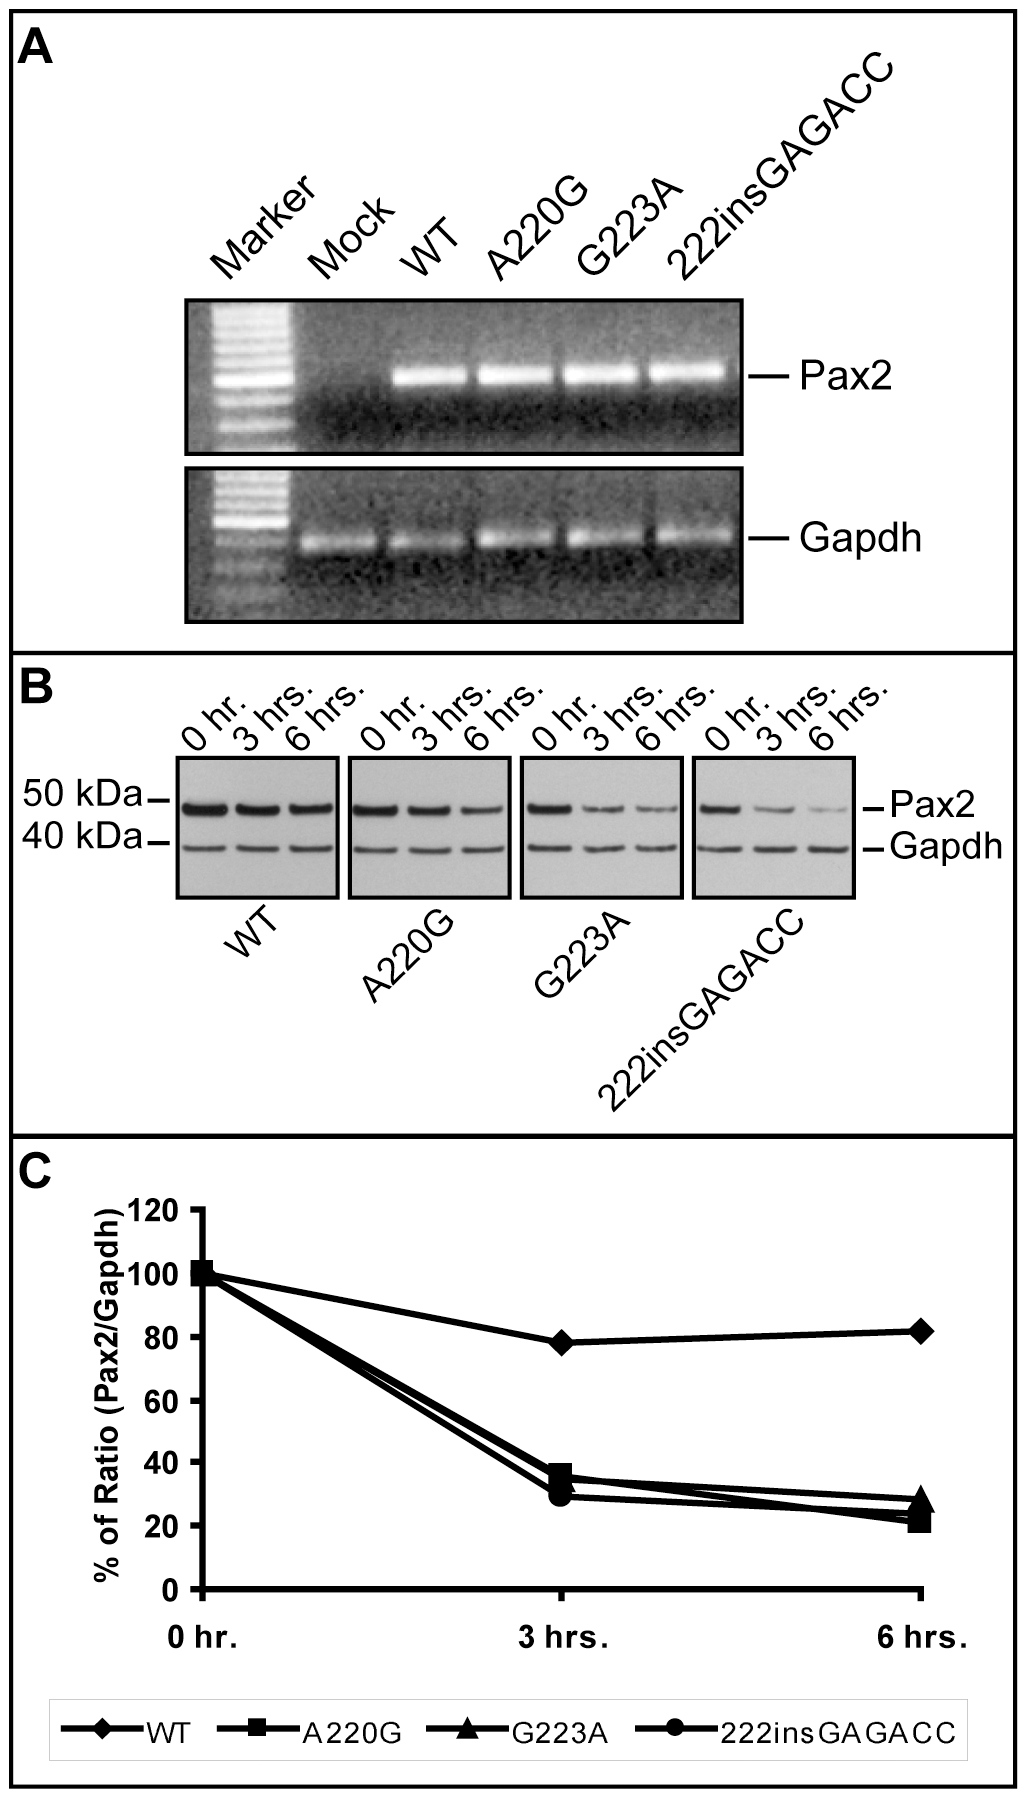 Comparison of <i>Pax2</i> mRNA steady-state levels and Pax2 protein stability in wild-type and mutant expression vector-transfected NIH/3T3 cells.